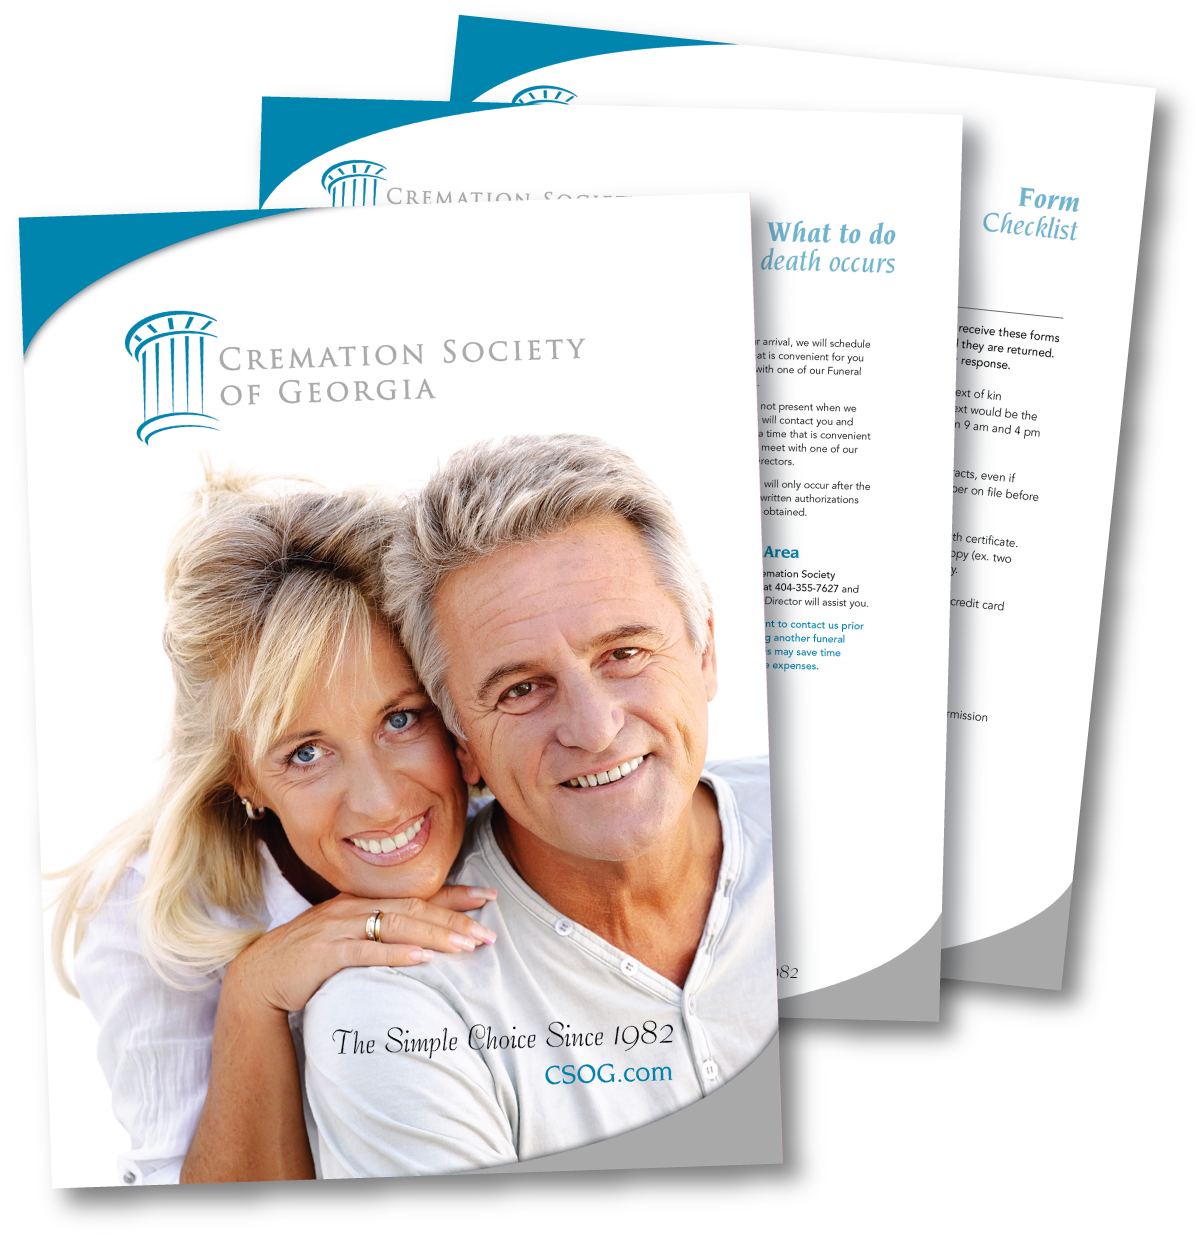 Request a FREE Planning Kit from Cremation Society of Missouri